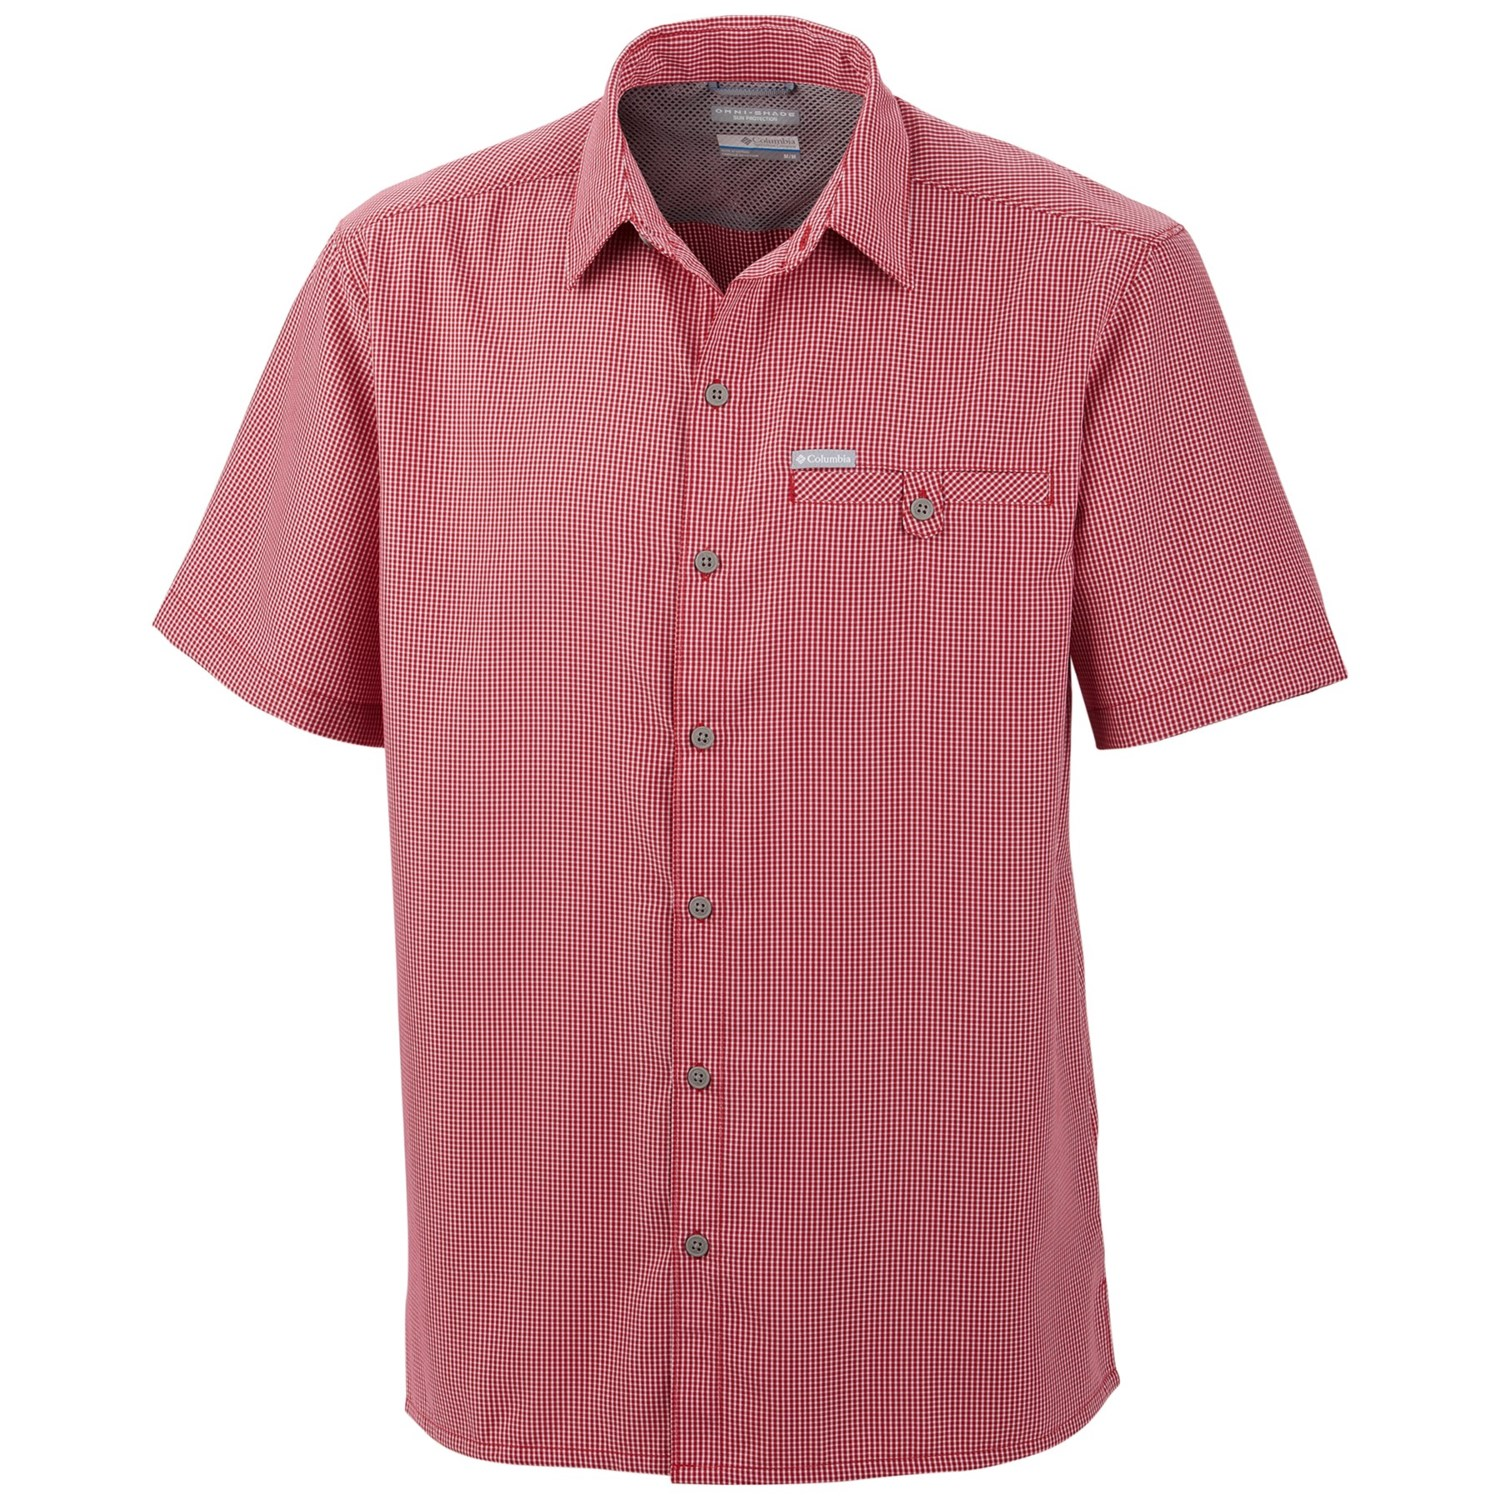 Columbia sportswear declination trail shirt short sleeve for Design your own t shirt big and tall